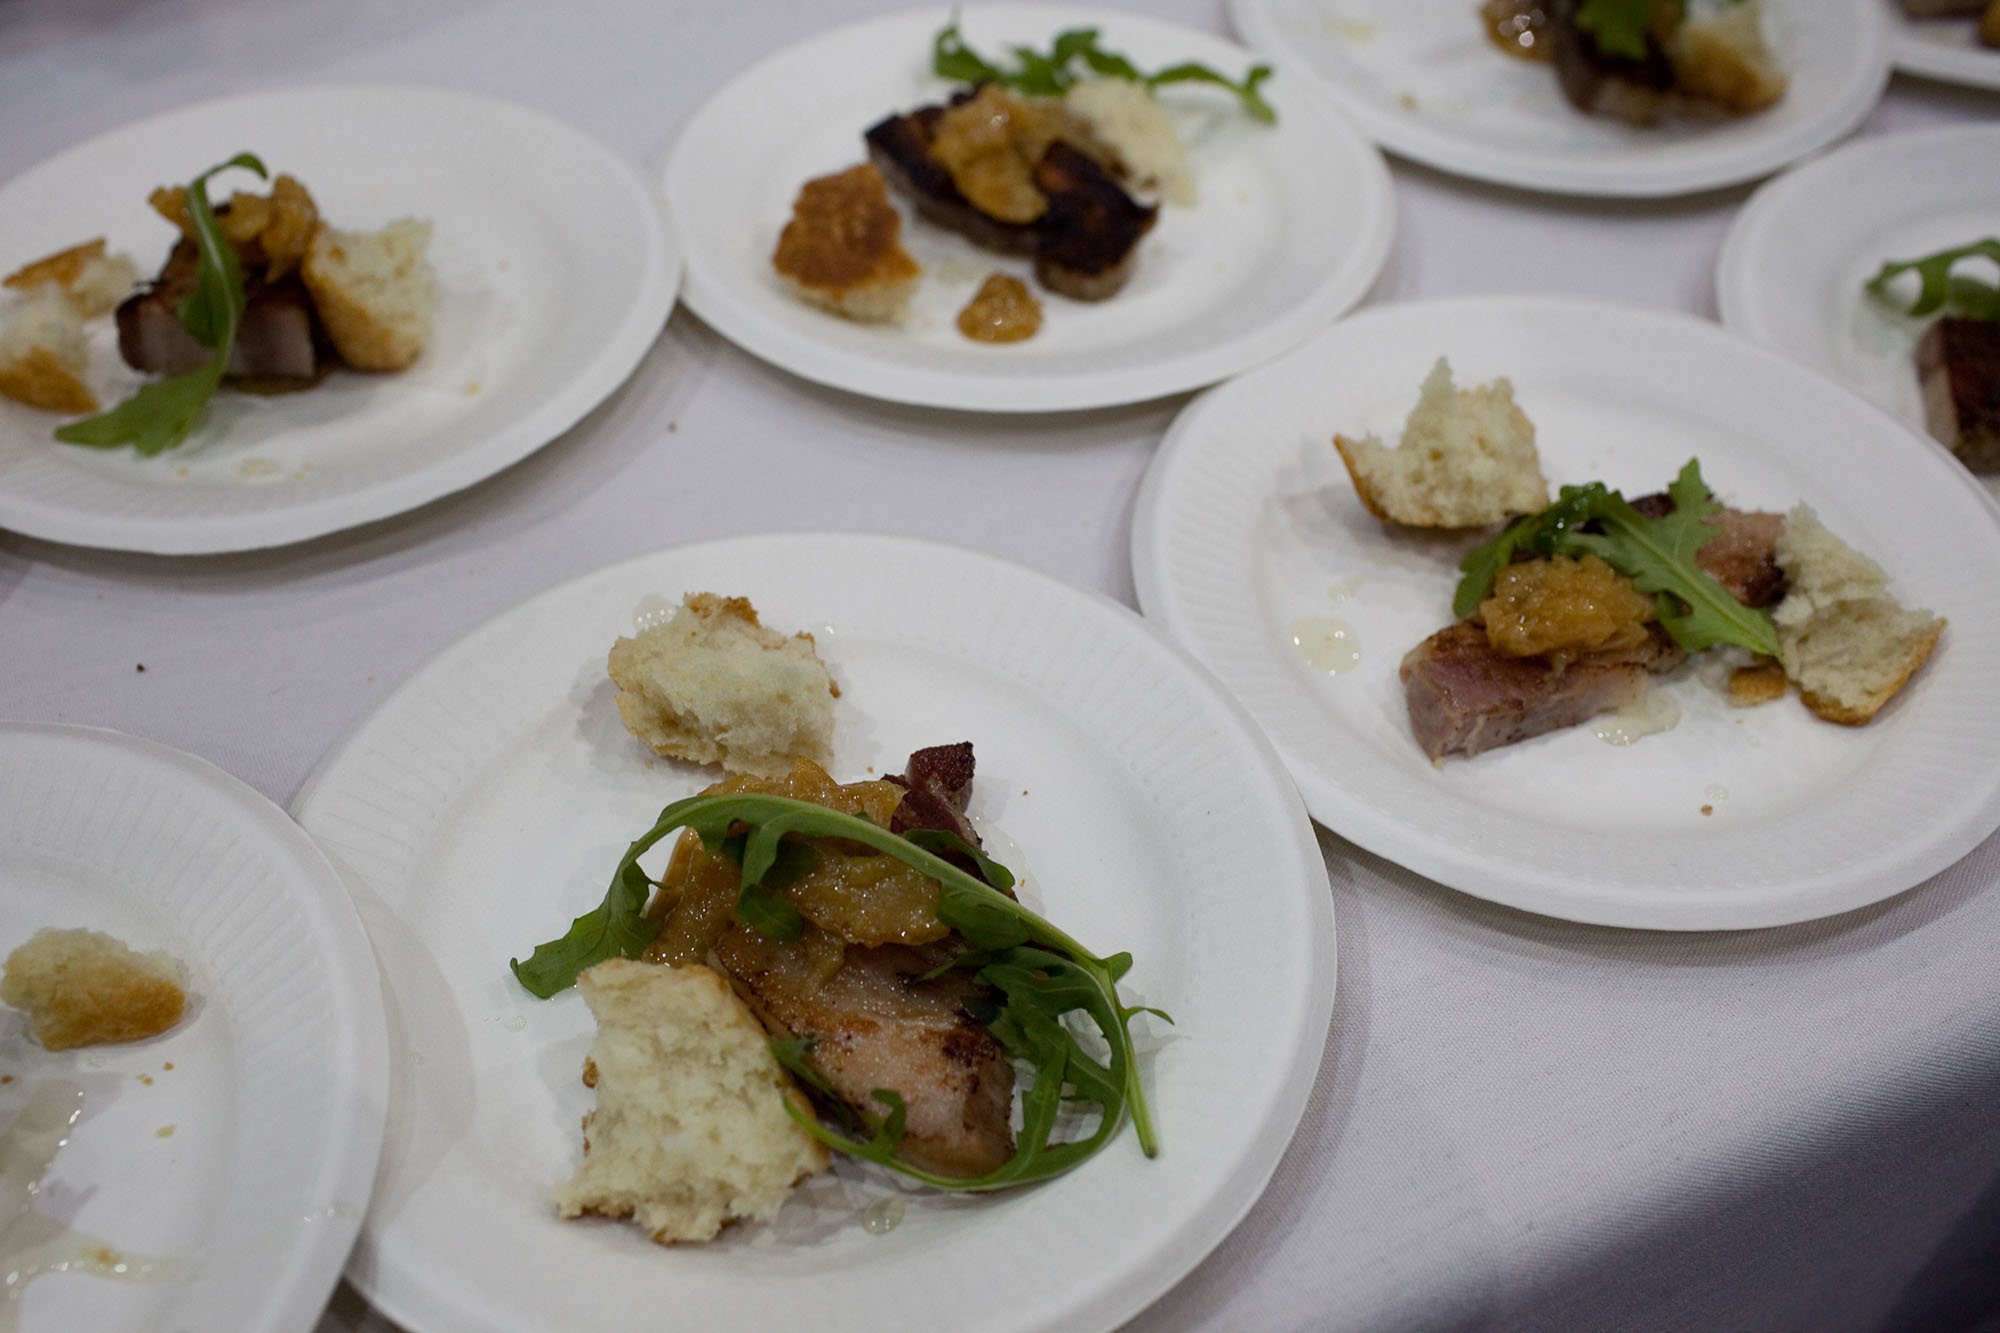 Baconfest Chicago - Roasted pork belly with meyer lemon marmalade, buttermilk biscuit and pine nut aillade